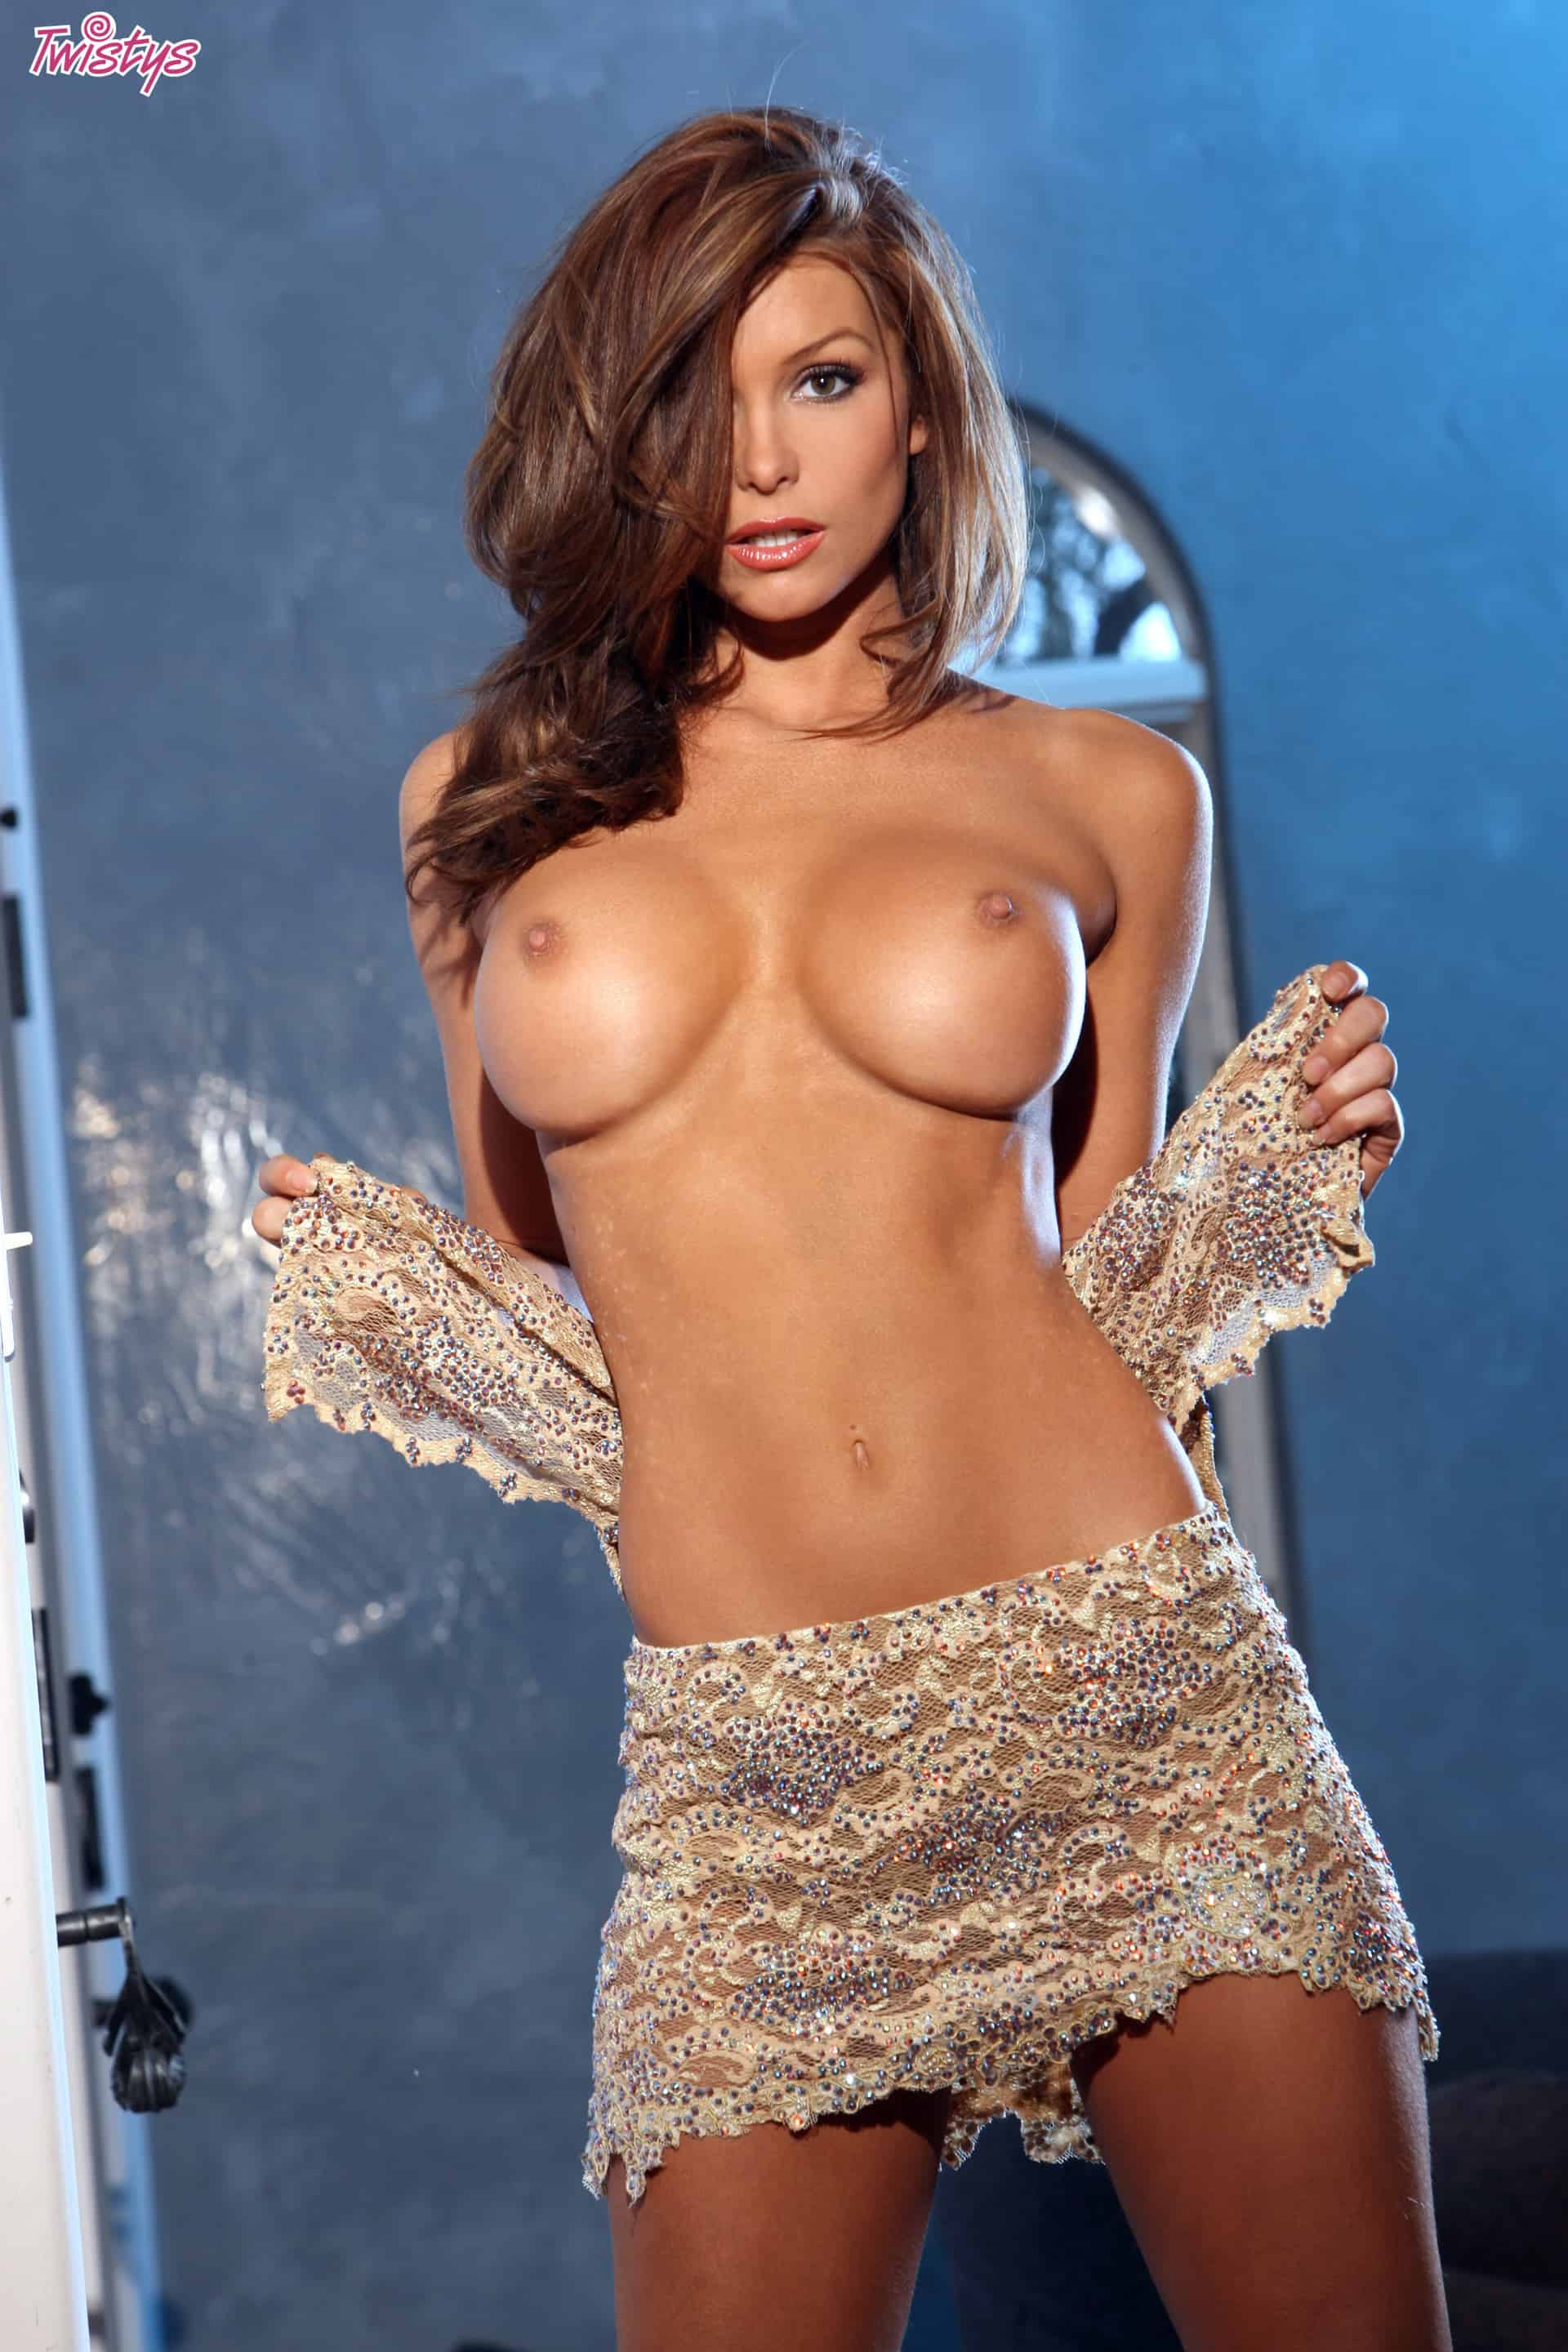 heather vandeven - free pics, videos & biography